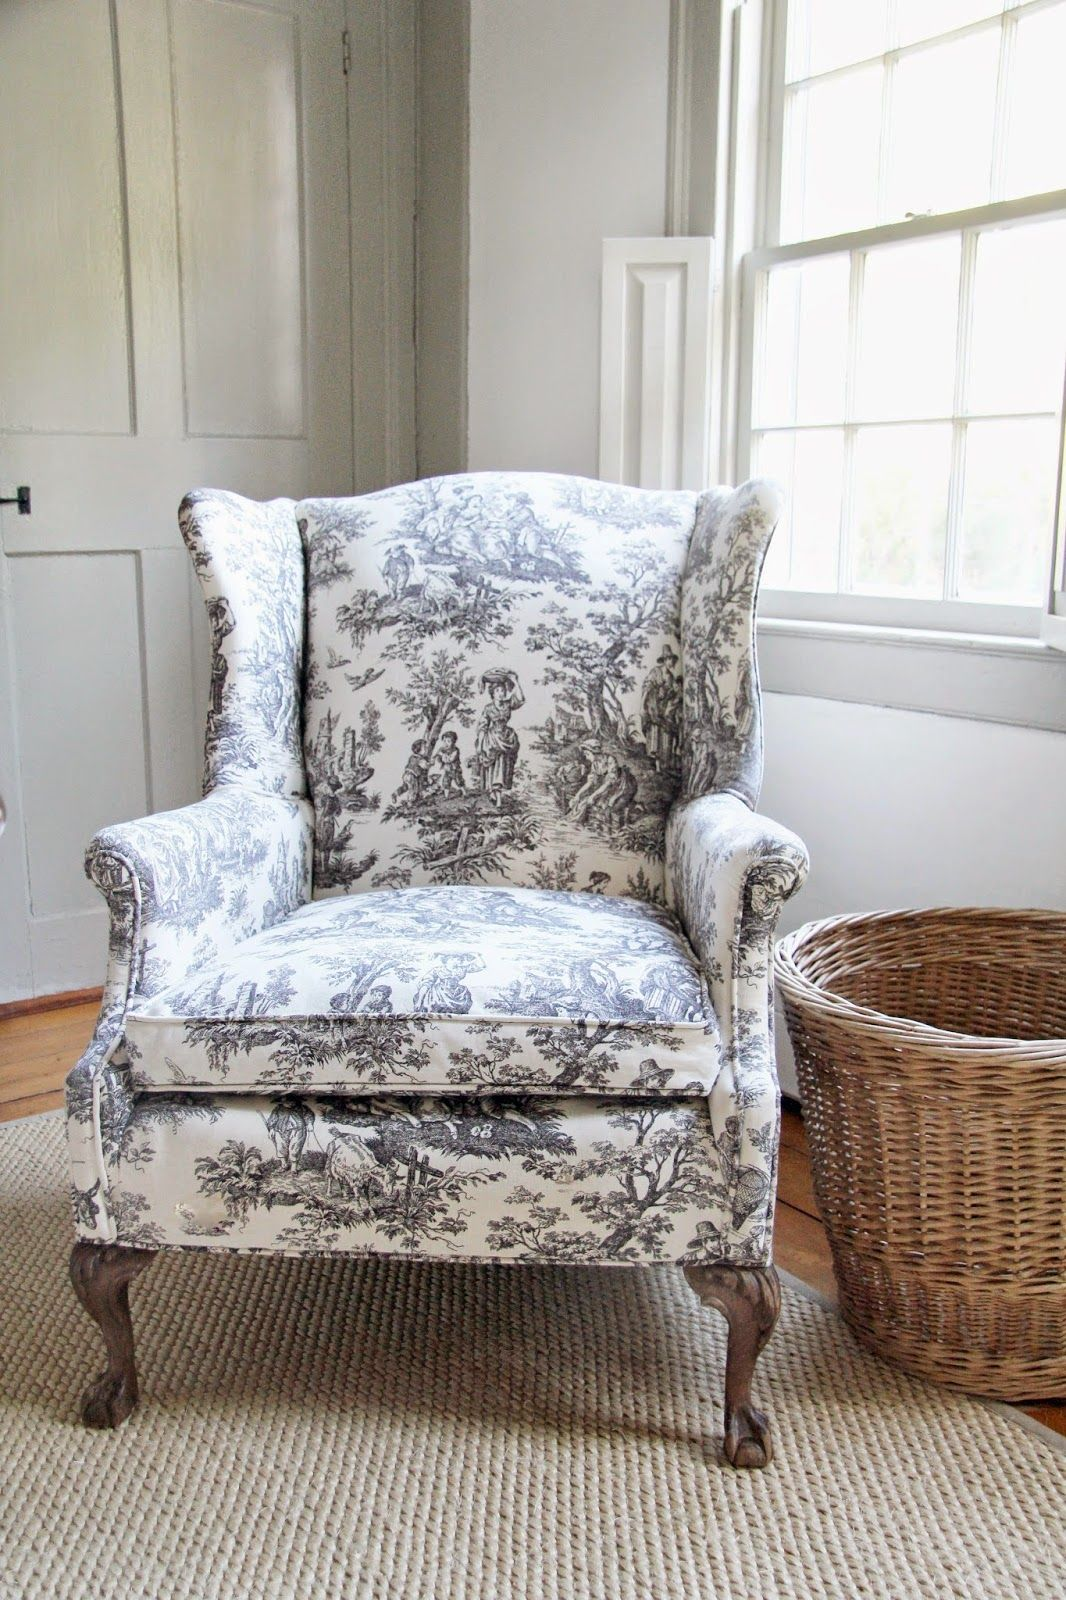 Genial Toile Wing Back Chair With Rattan Basket